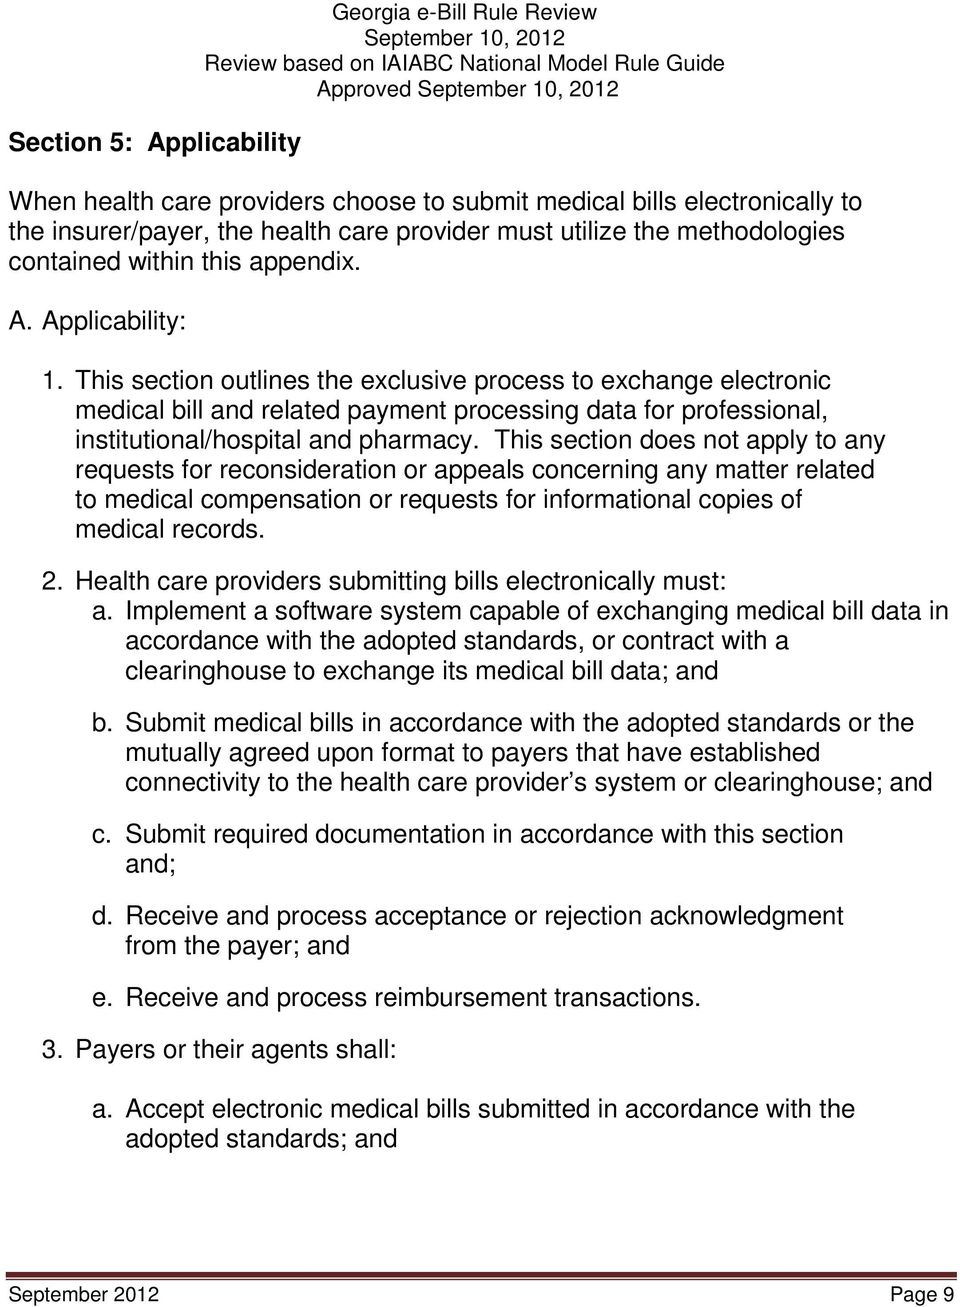 This section outlines the exclusive process to exchange electronic medical bill and related payment processing data for professional, institutional/hospital and pharmacy.